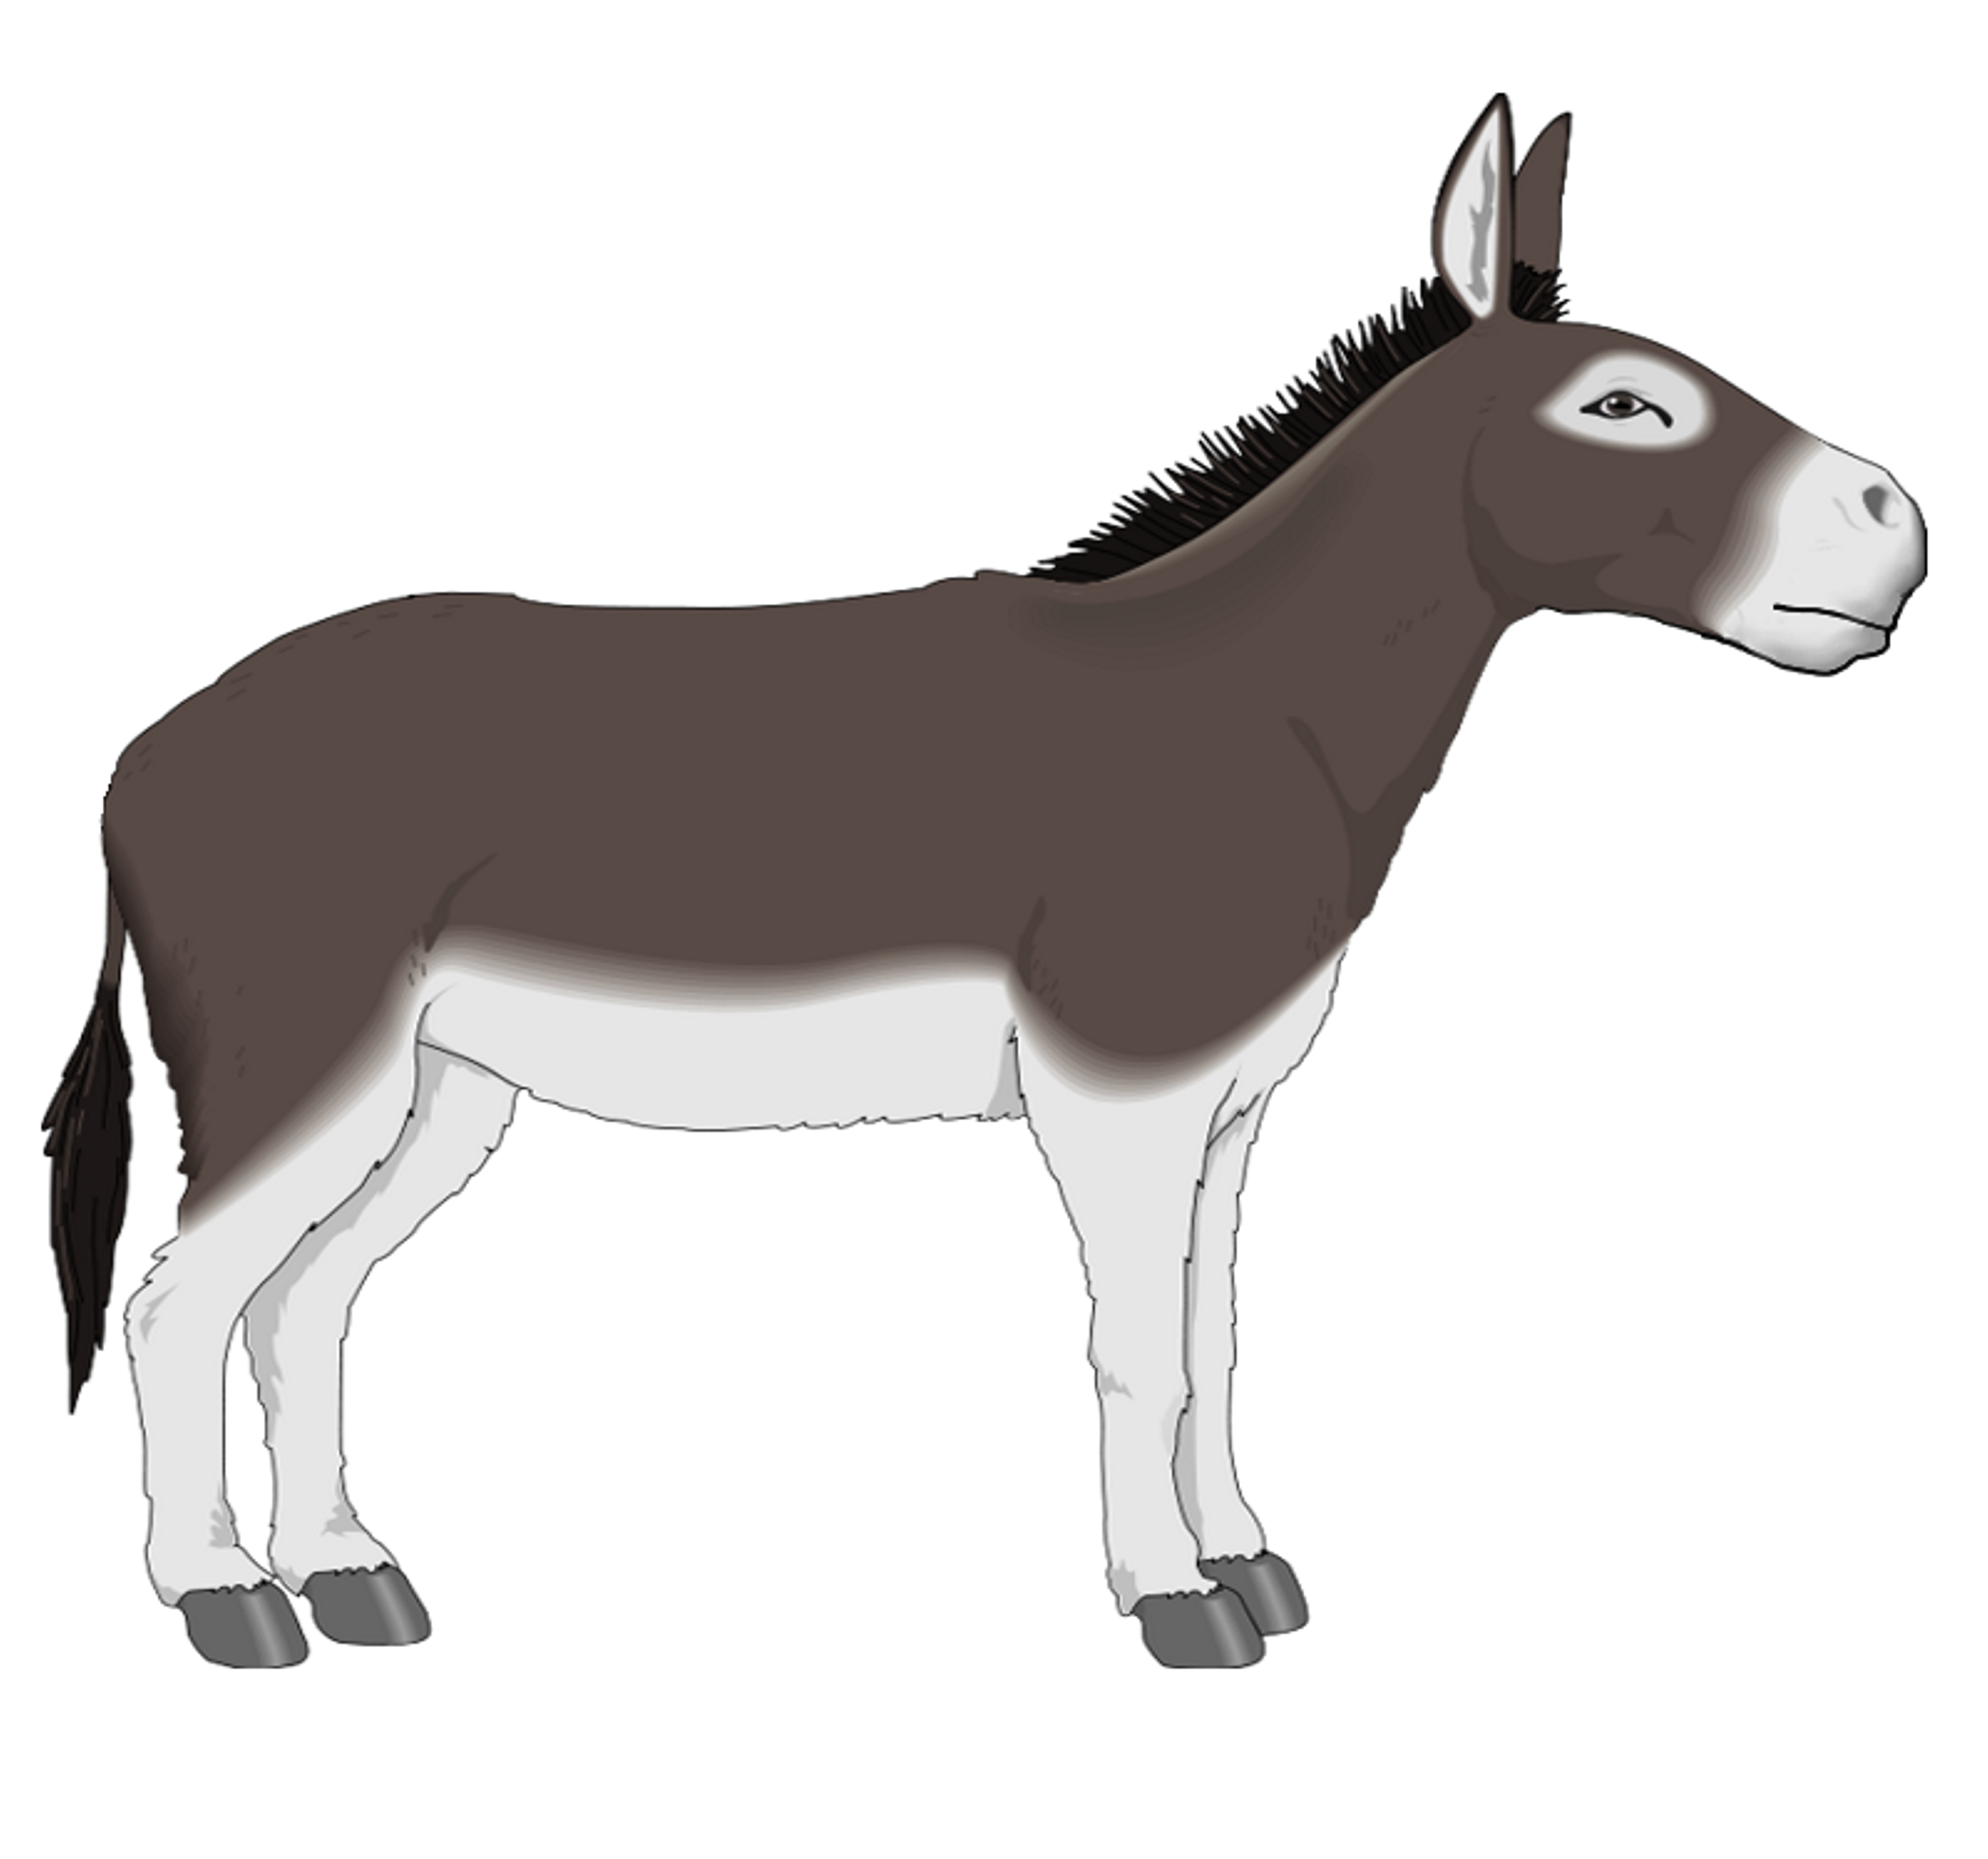 Domkey. Free donkey clipart download